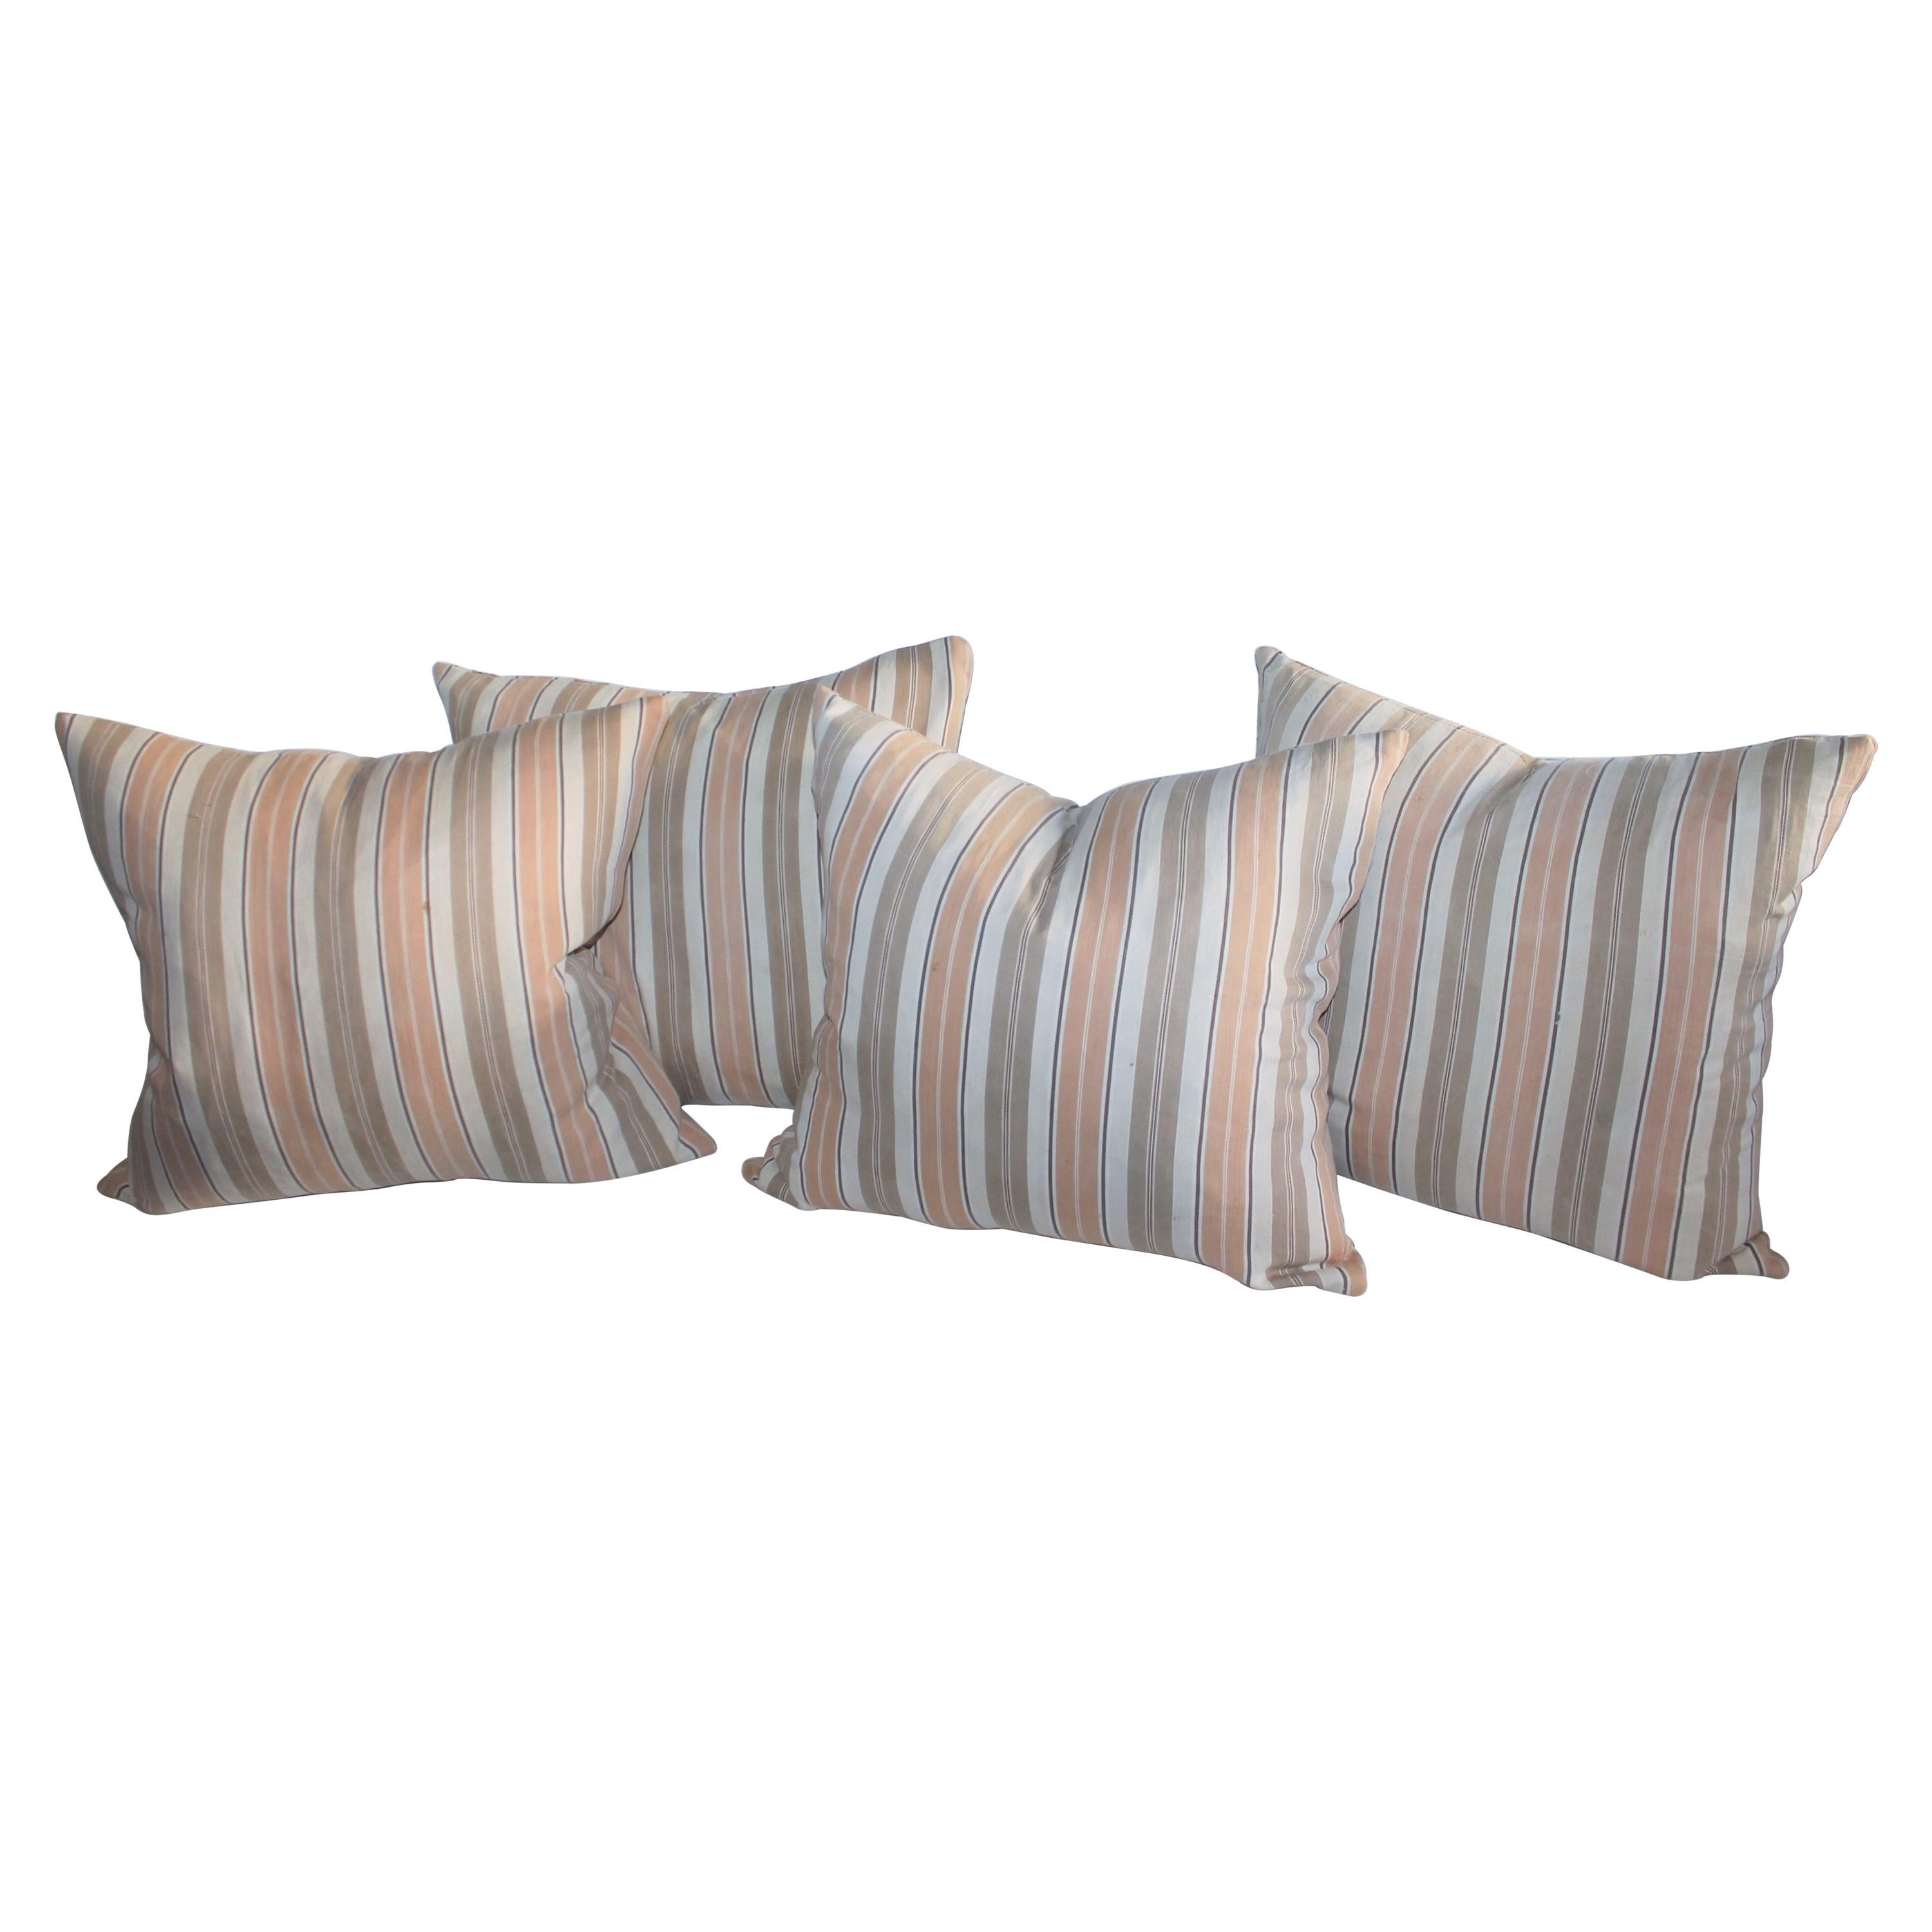 19Thc Early Ticking Pillows, Collection of Four Pillows